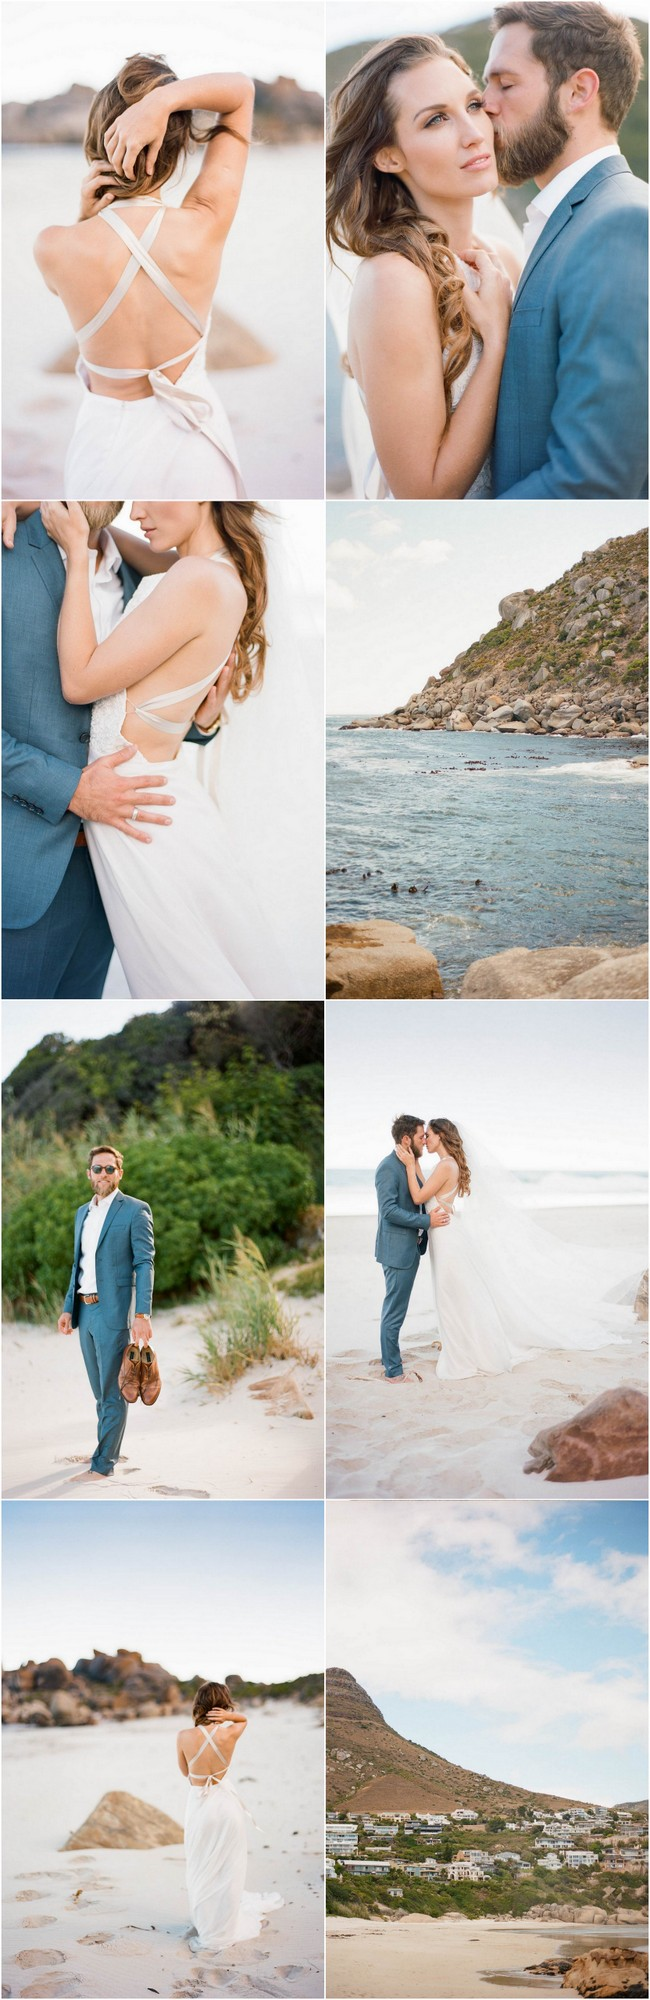 Romantic Cape Town Beach Bride 3